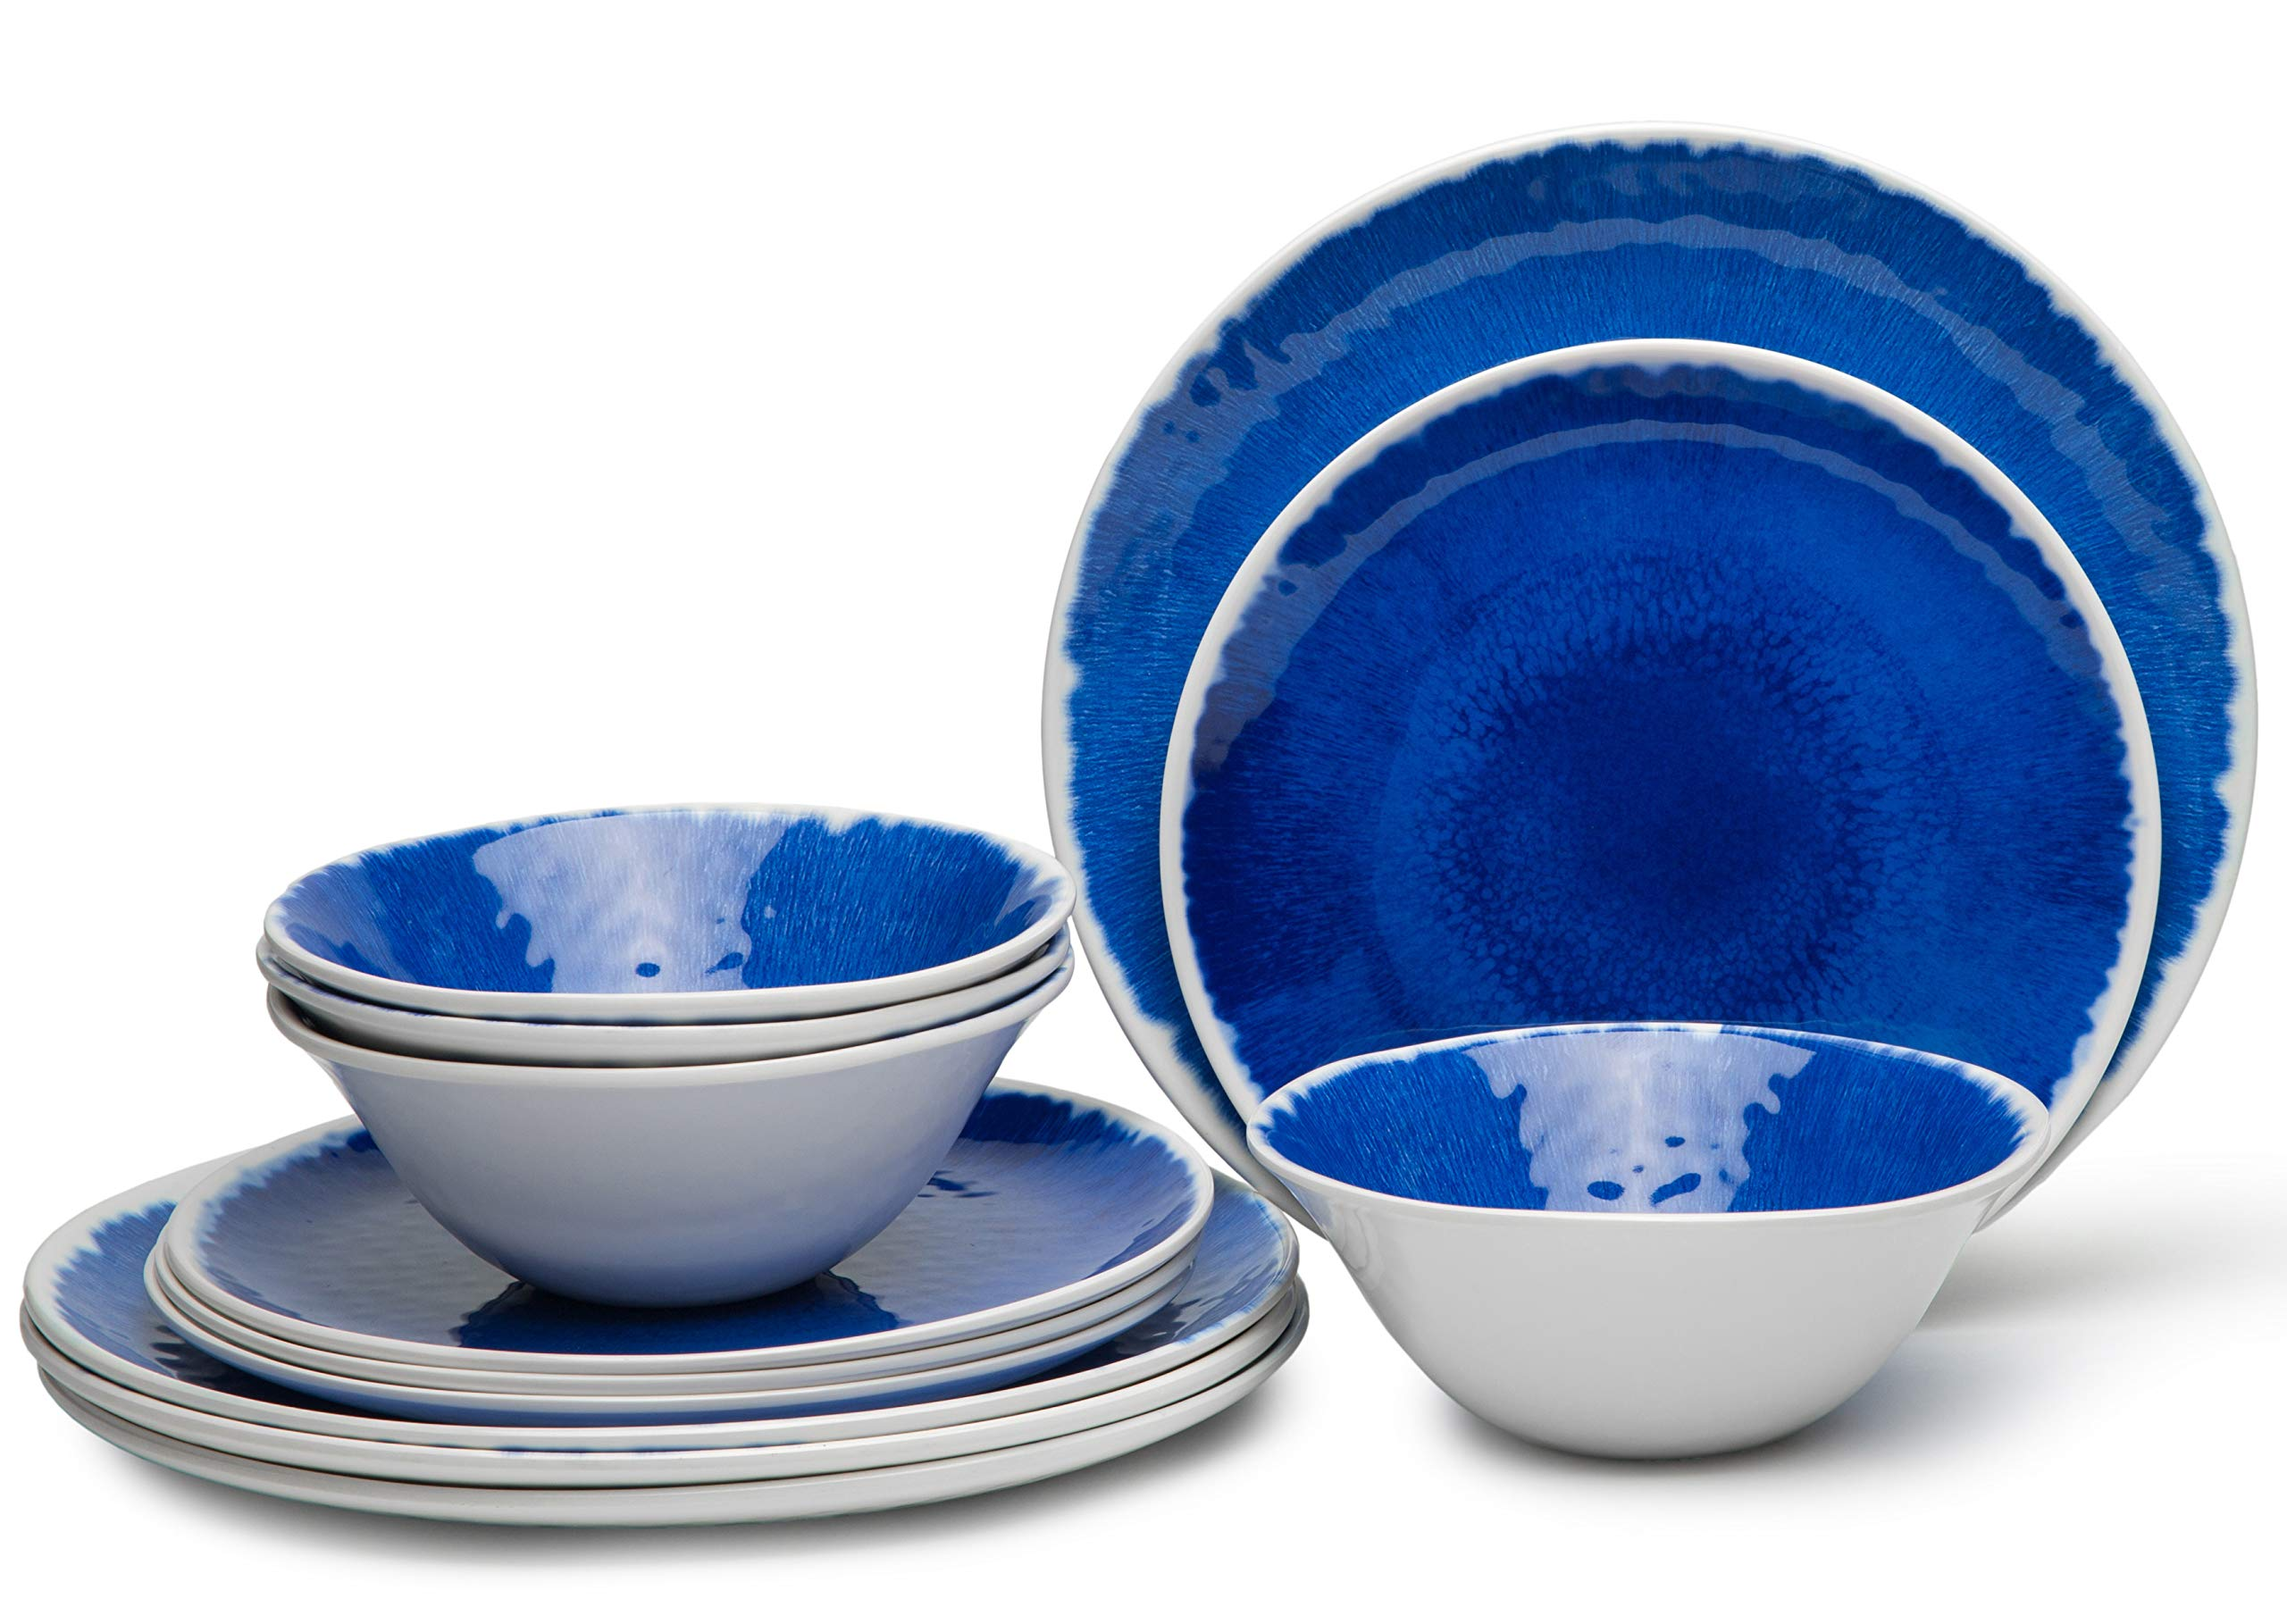 12-Piece Melamine Dinnerware Set, Dinnerware Set for 4, Dishwasher Safe, BPA free,Unbreakable,Blue - This dinnerware set includes: 4 pcs 6-3/4-inch creal/soup bowls, 4 pcs 9 inch dessert plates, 4 pcs 10-3/4-inch dinner plates. 12 piece dinnerware set are great for RV, camping, picnics, tailgating, any indoor and outdoor activities. Durable Break & Chip Resistant Melamine Material. Dishwasher-safe and Lightweight,easy to hand wash. - kitchen-tabletop, kitchen-dining-room, dinnerware-sets - 81CLGMWNP6L -